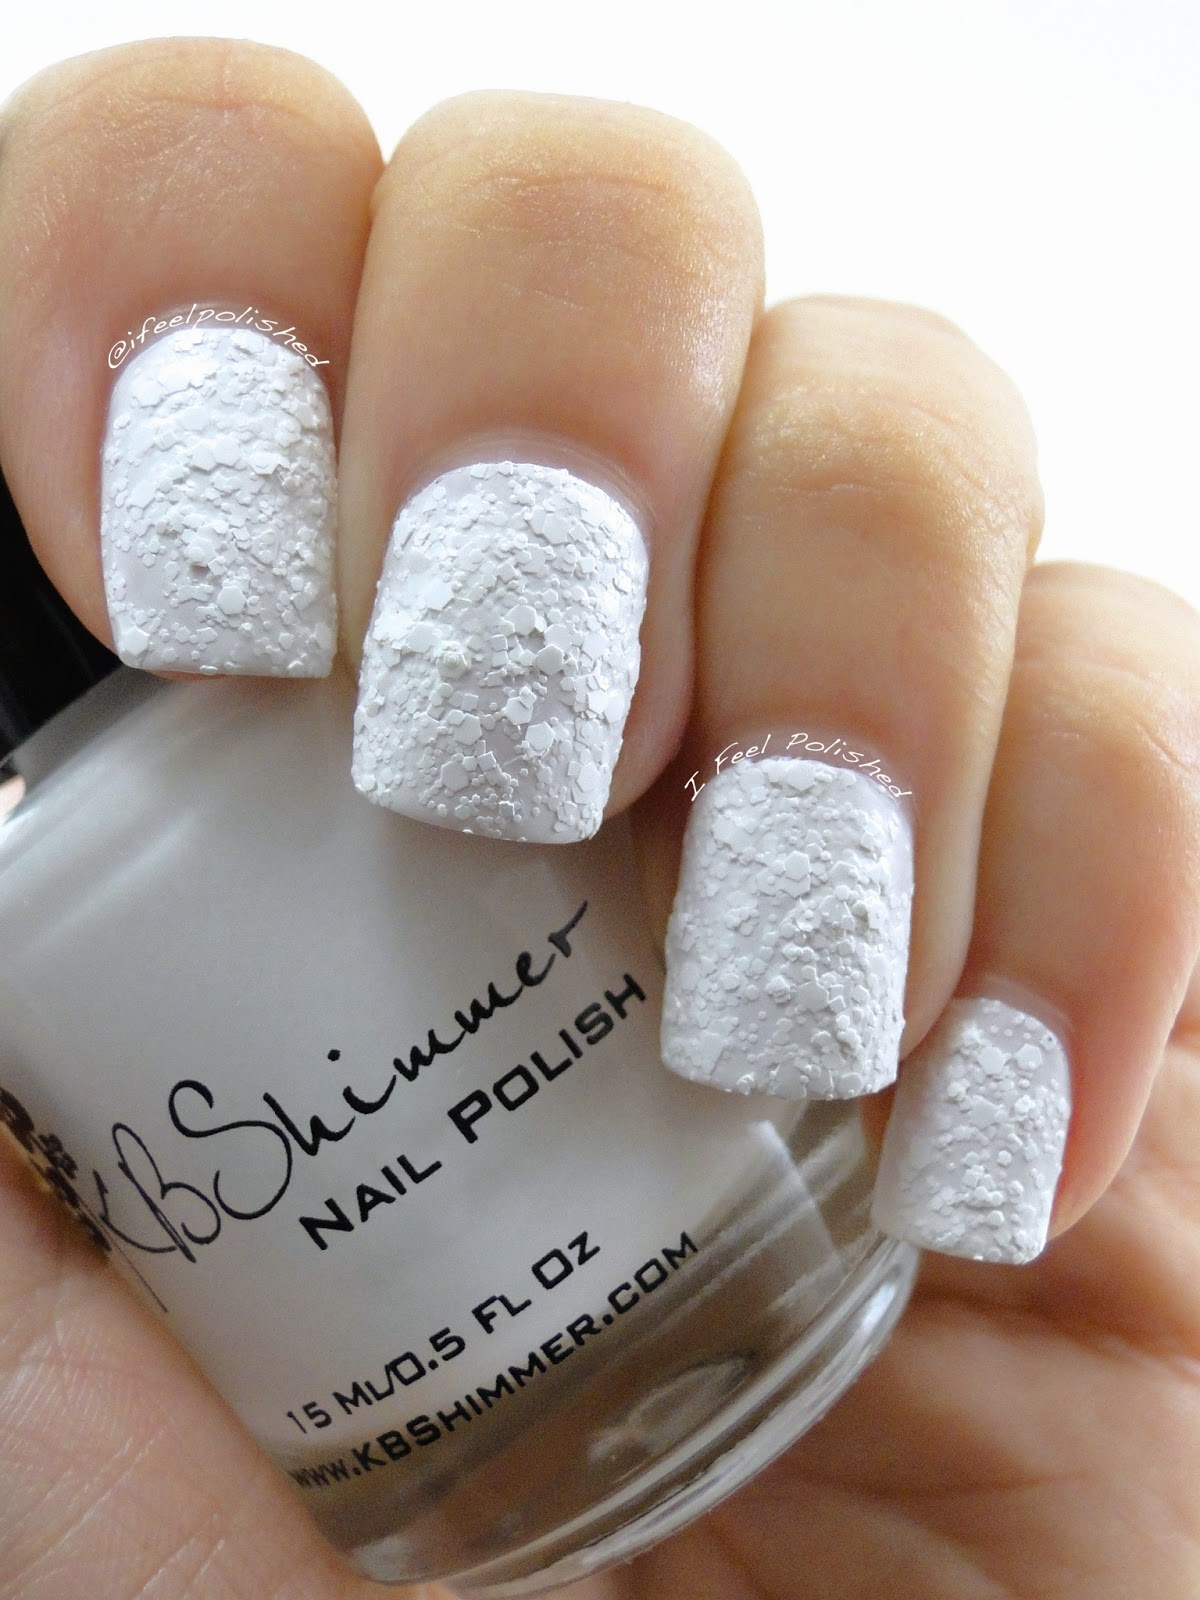 KBShimmer White Here White Now